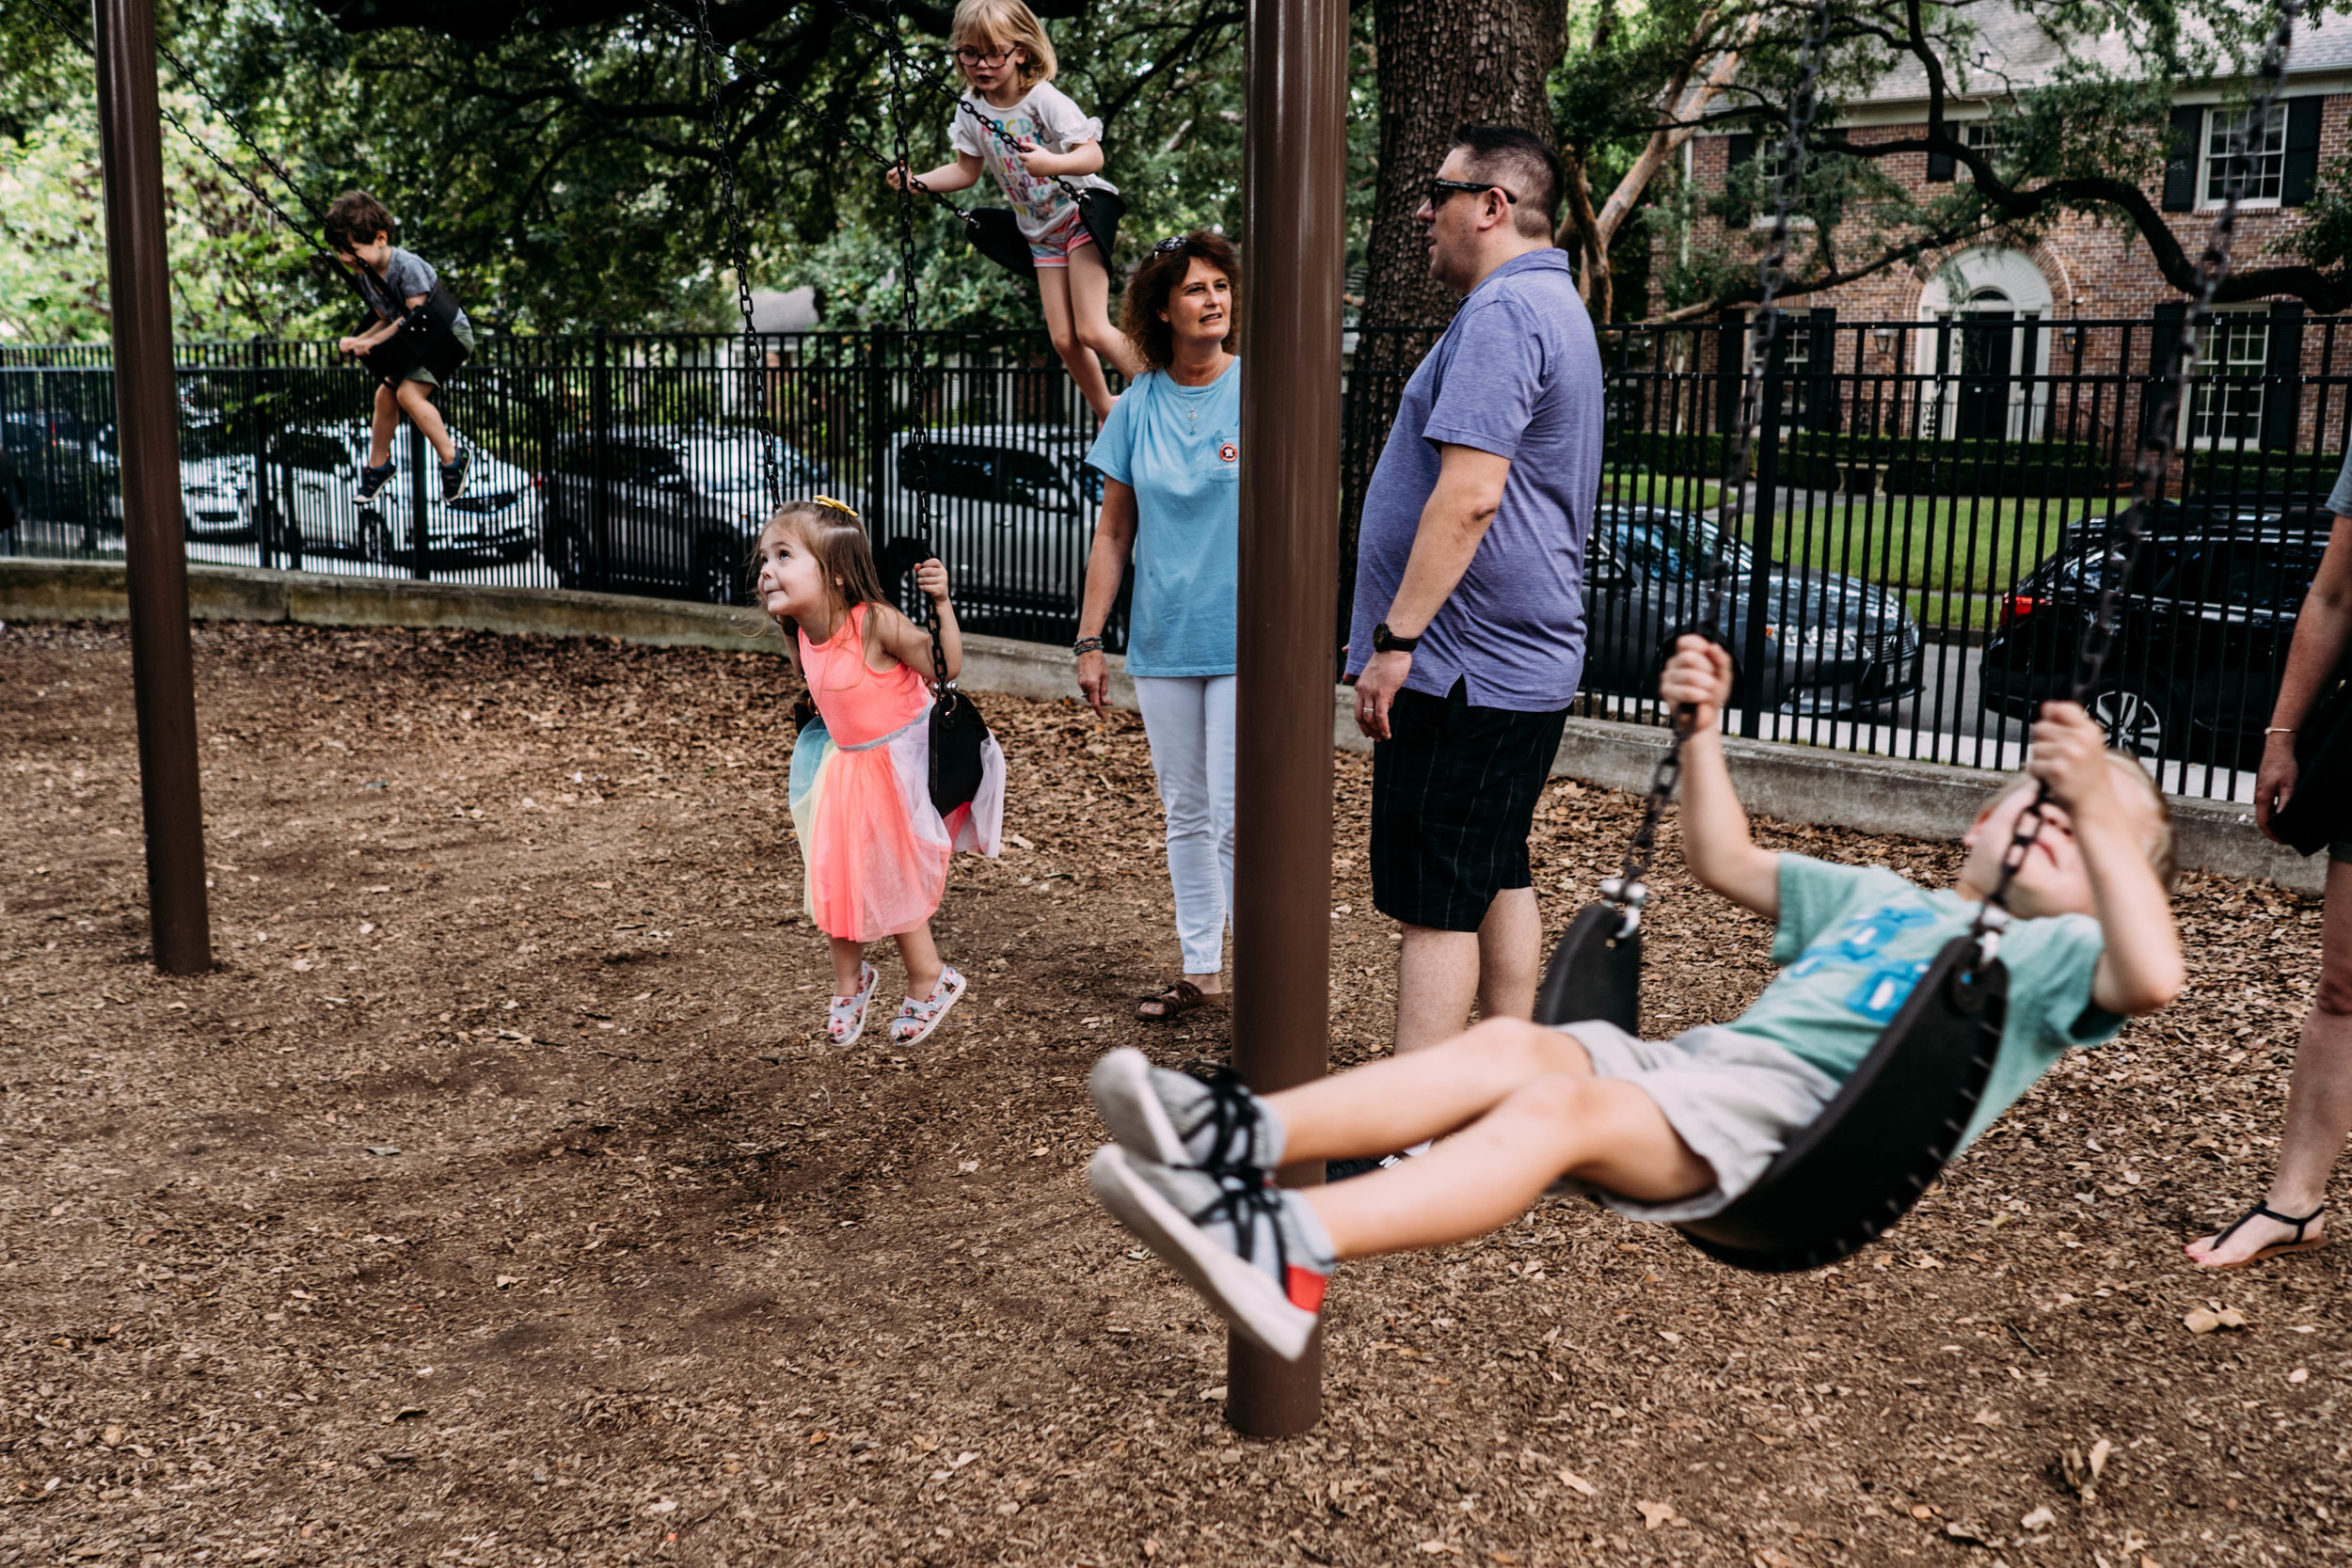 birthday party at the park-12.jpg